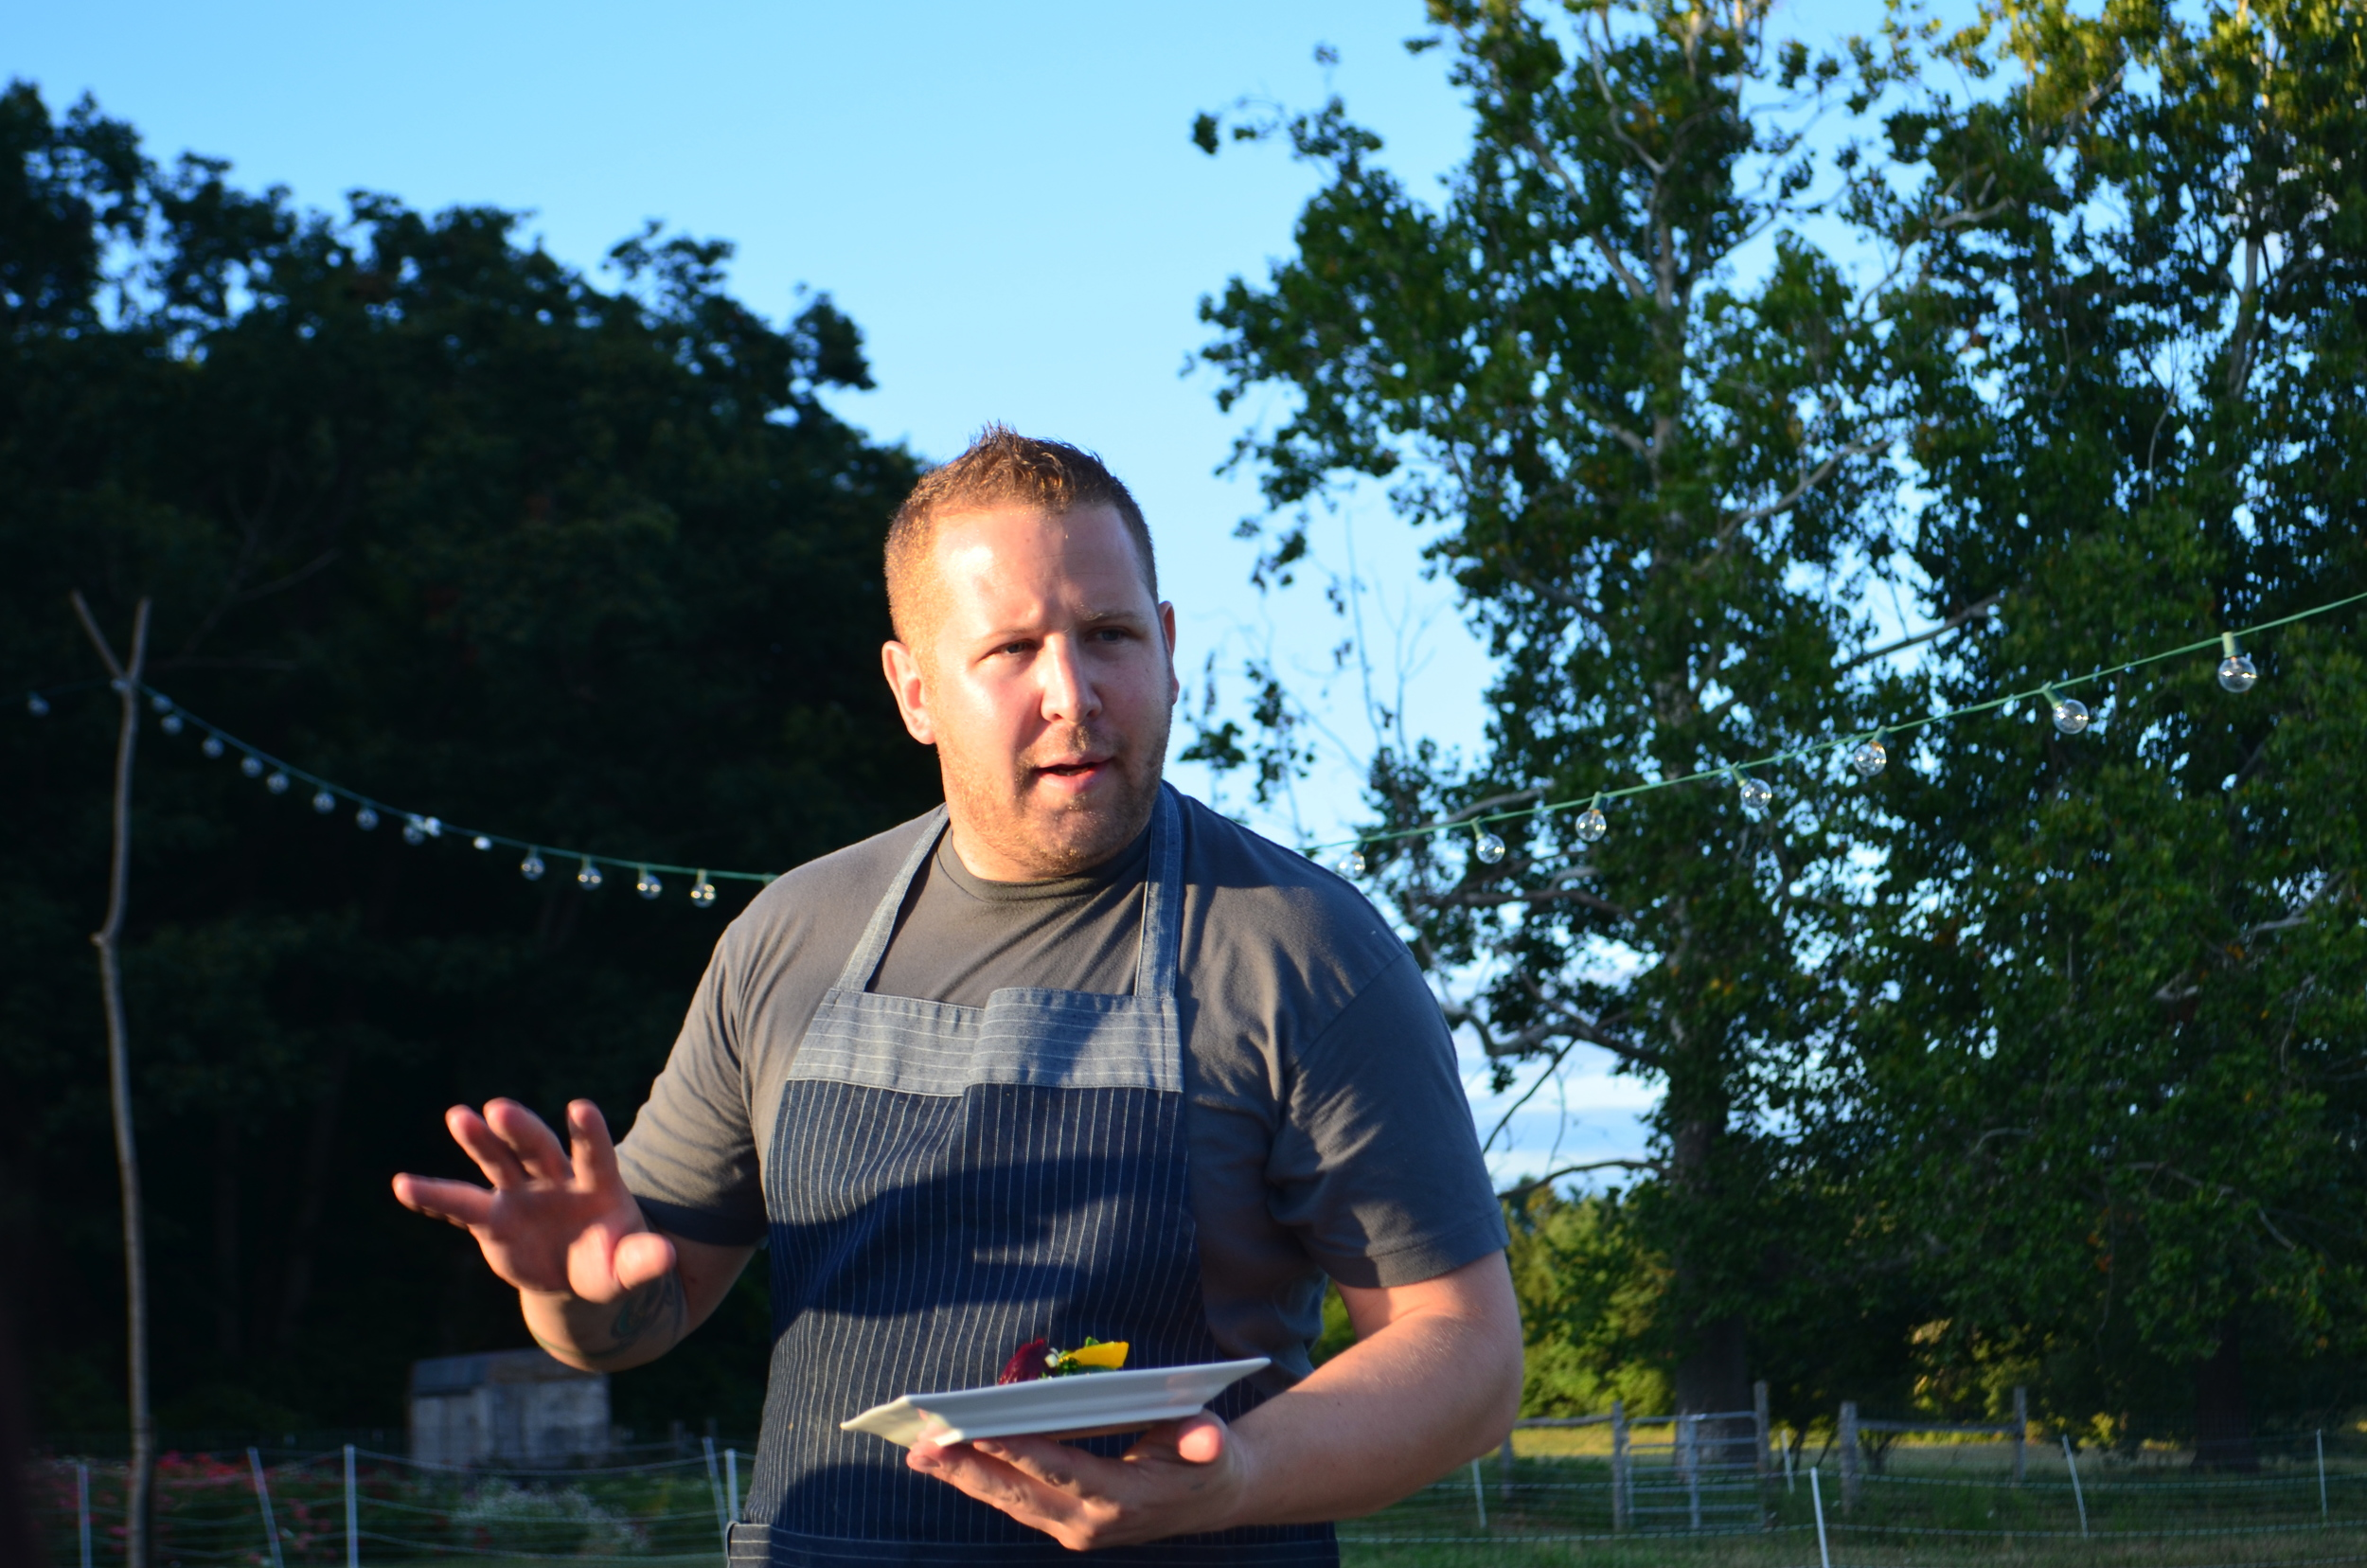 Chef Eric Stagl explaining the pork belly dish at Dinner in the Field at Eddy Farm